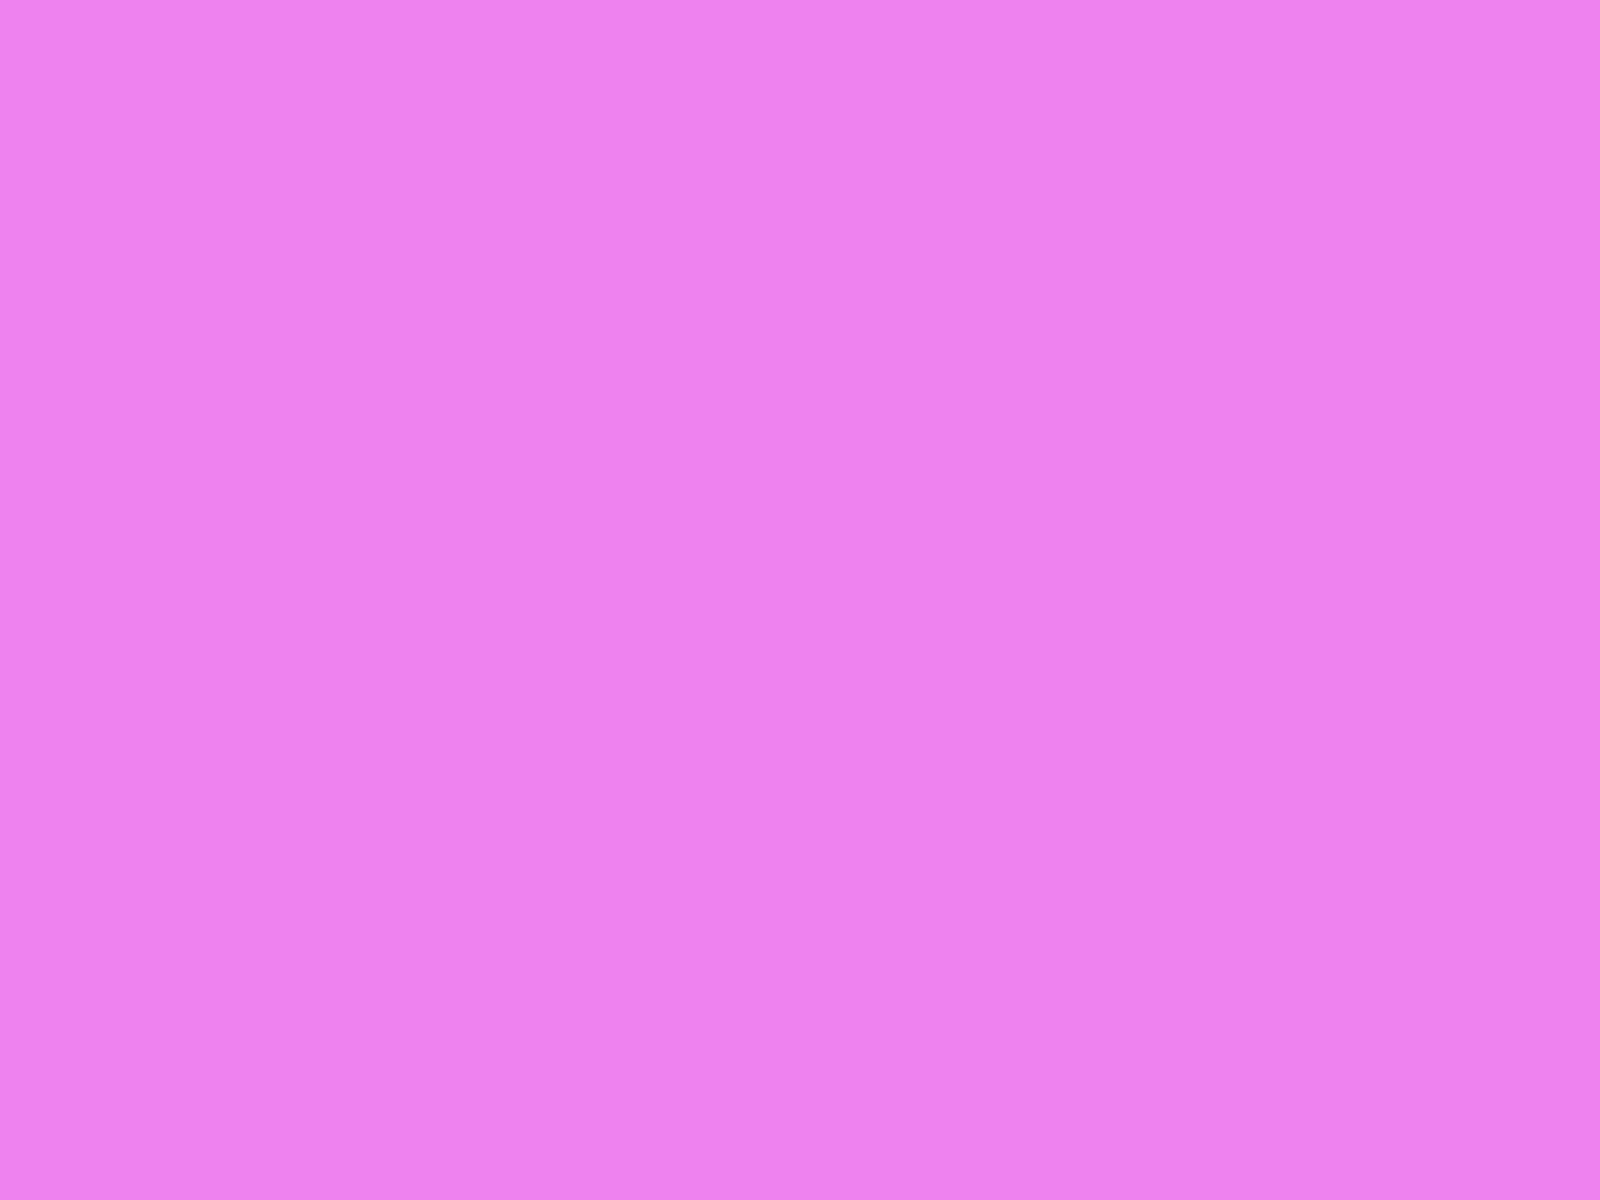 1600x1200 Lavender Magenta Solid Color Background